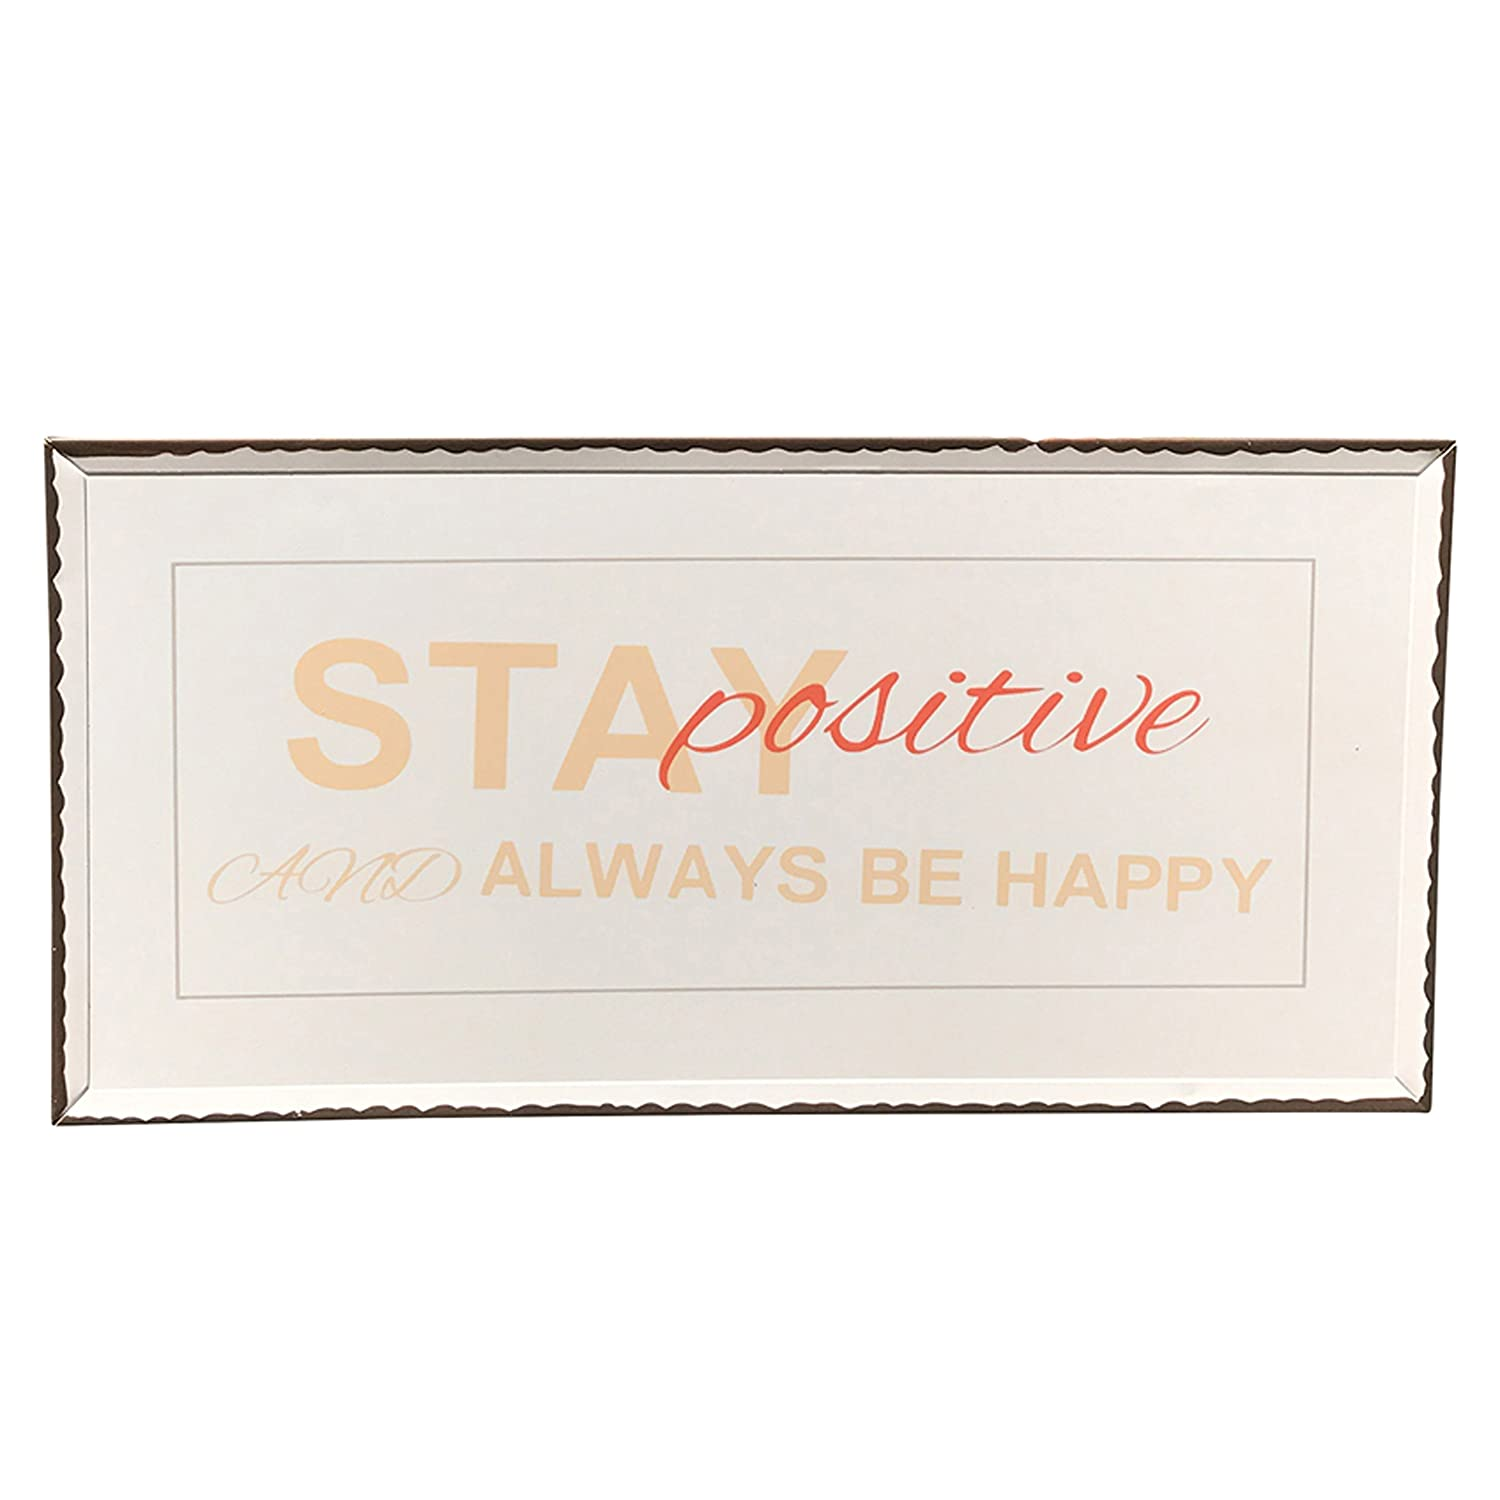 15 3//4 W x 8 H Inches WHW Whole House Worlds Stay Positive and Always BE Happy Word Art Plaque Distressed Creamy White with Coral and Tangerine Text Rustic Style Sign Brown Edges